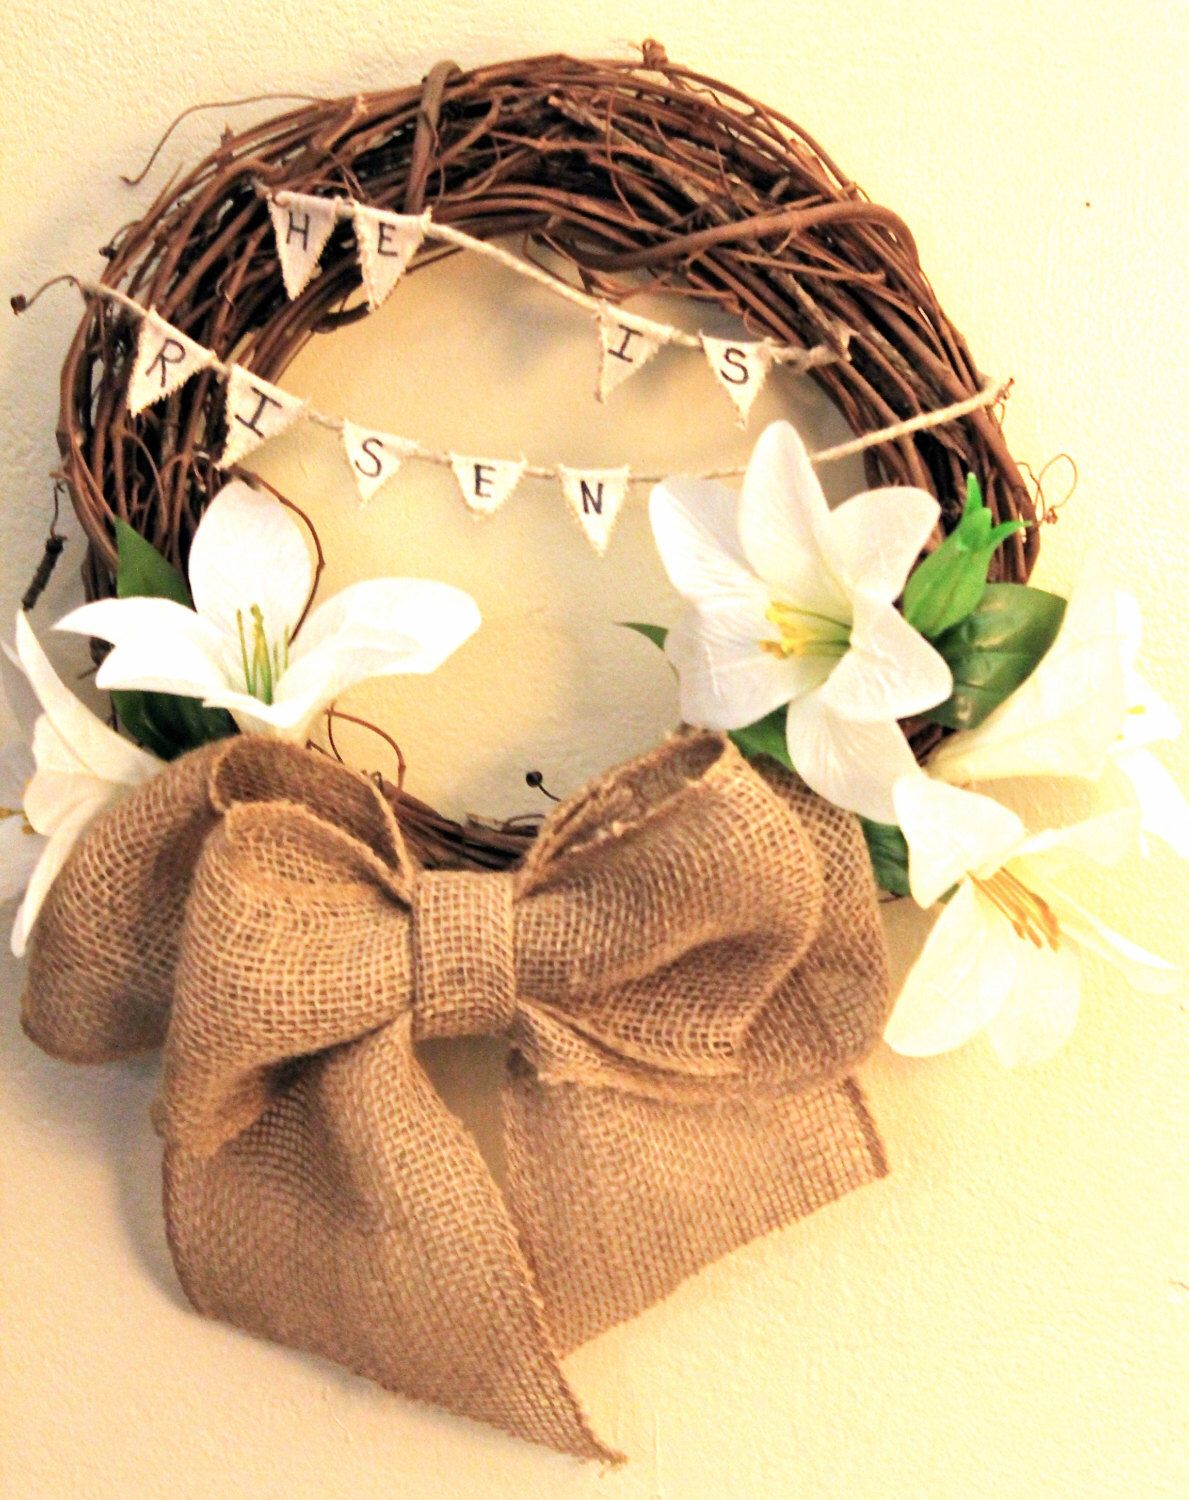 Easter lily wreath easter wreath he is risen door hanger wall easter lily wreath easter wreath he is risen door hanger wall hanging negle Choice Image